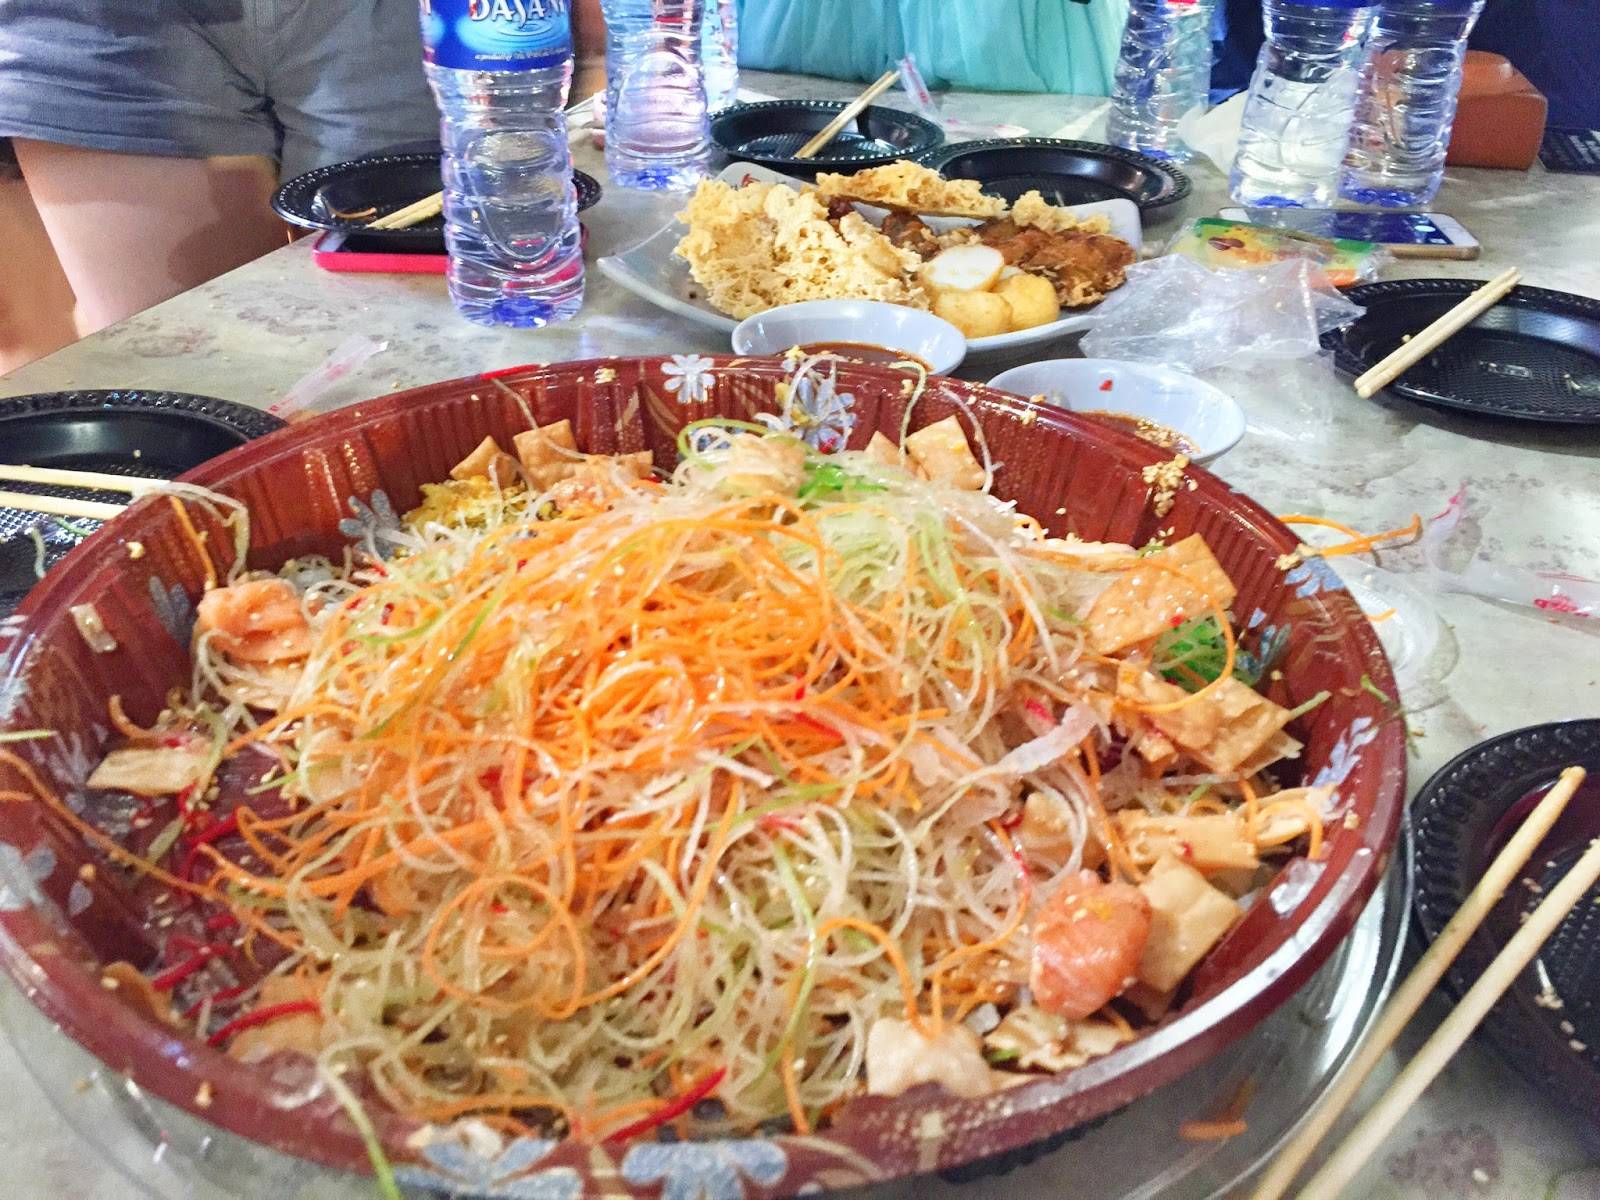 Yu Sheng at Chinatown Food Street messy